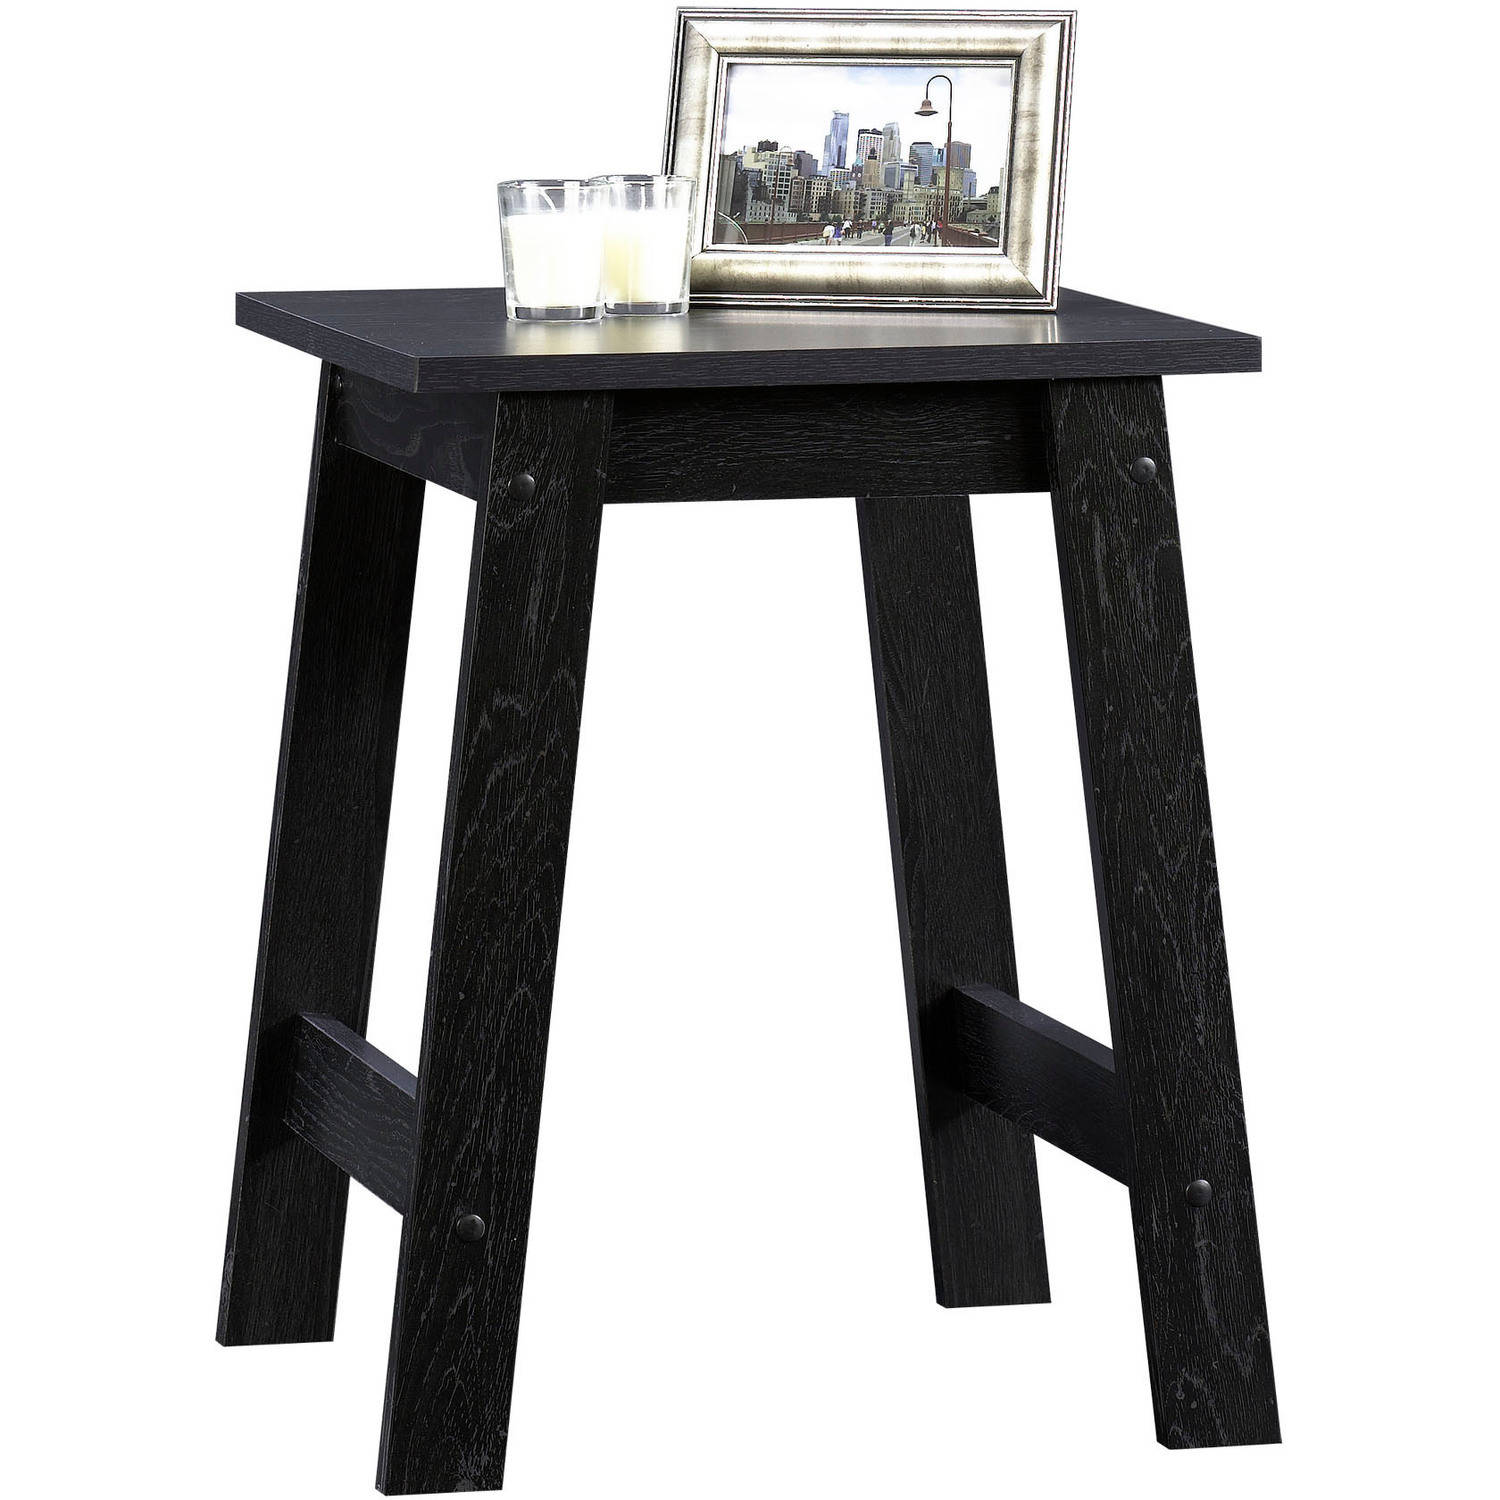 Sauder Beginnings Collection Side Table, Black   Walmart.com